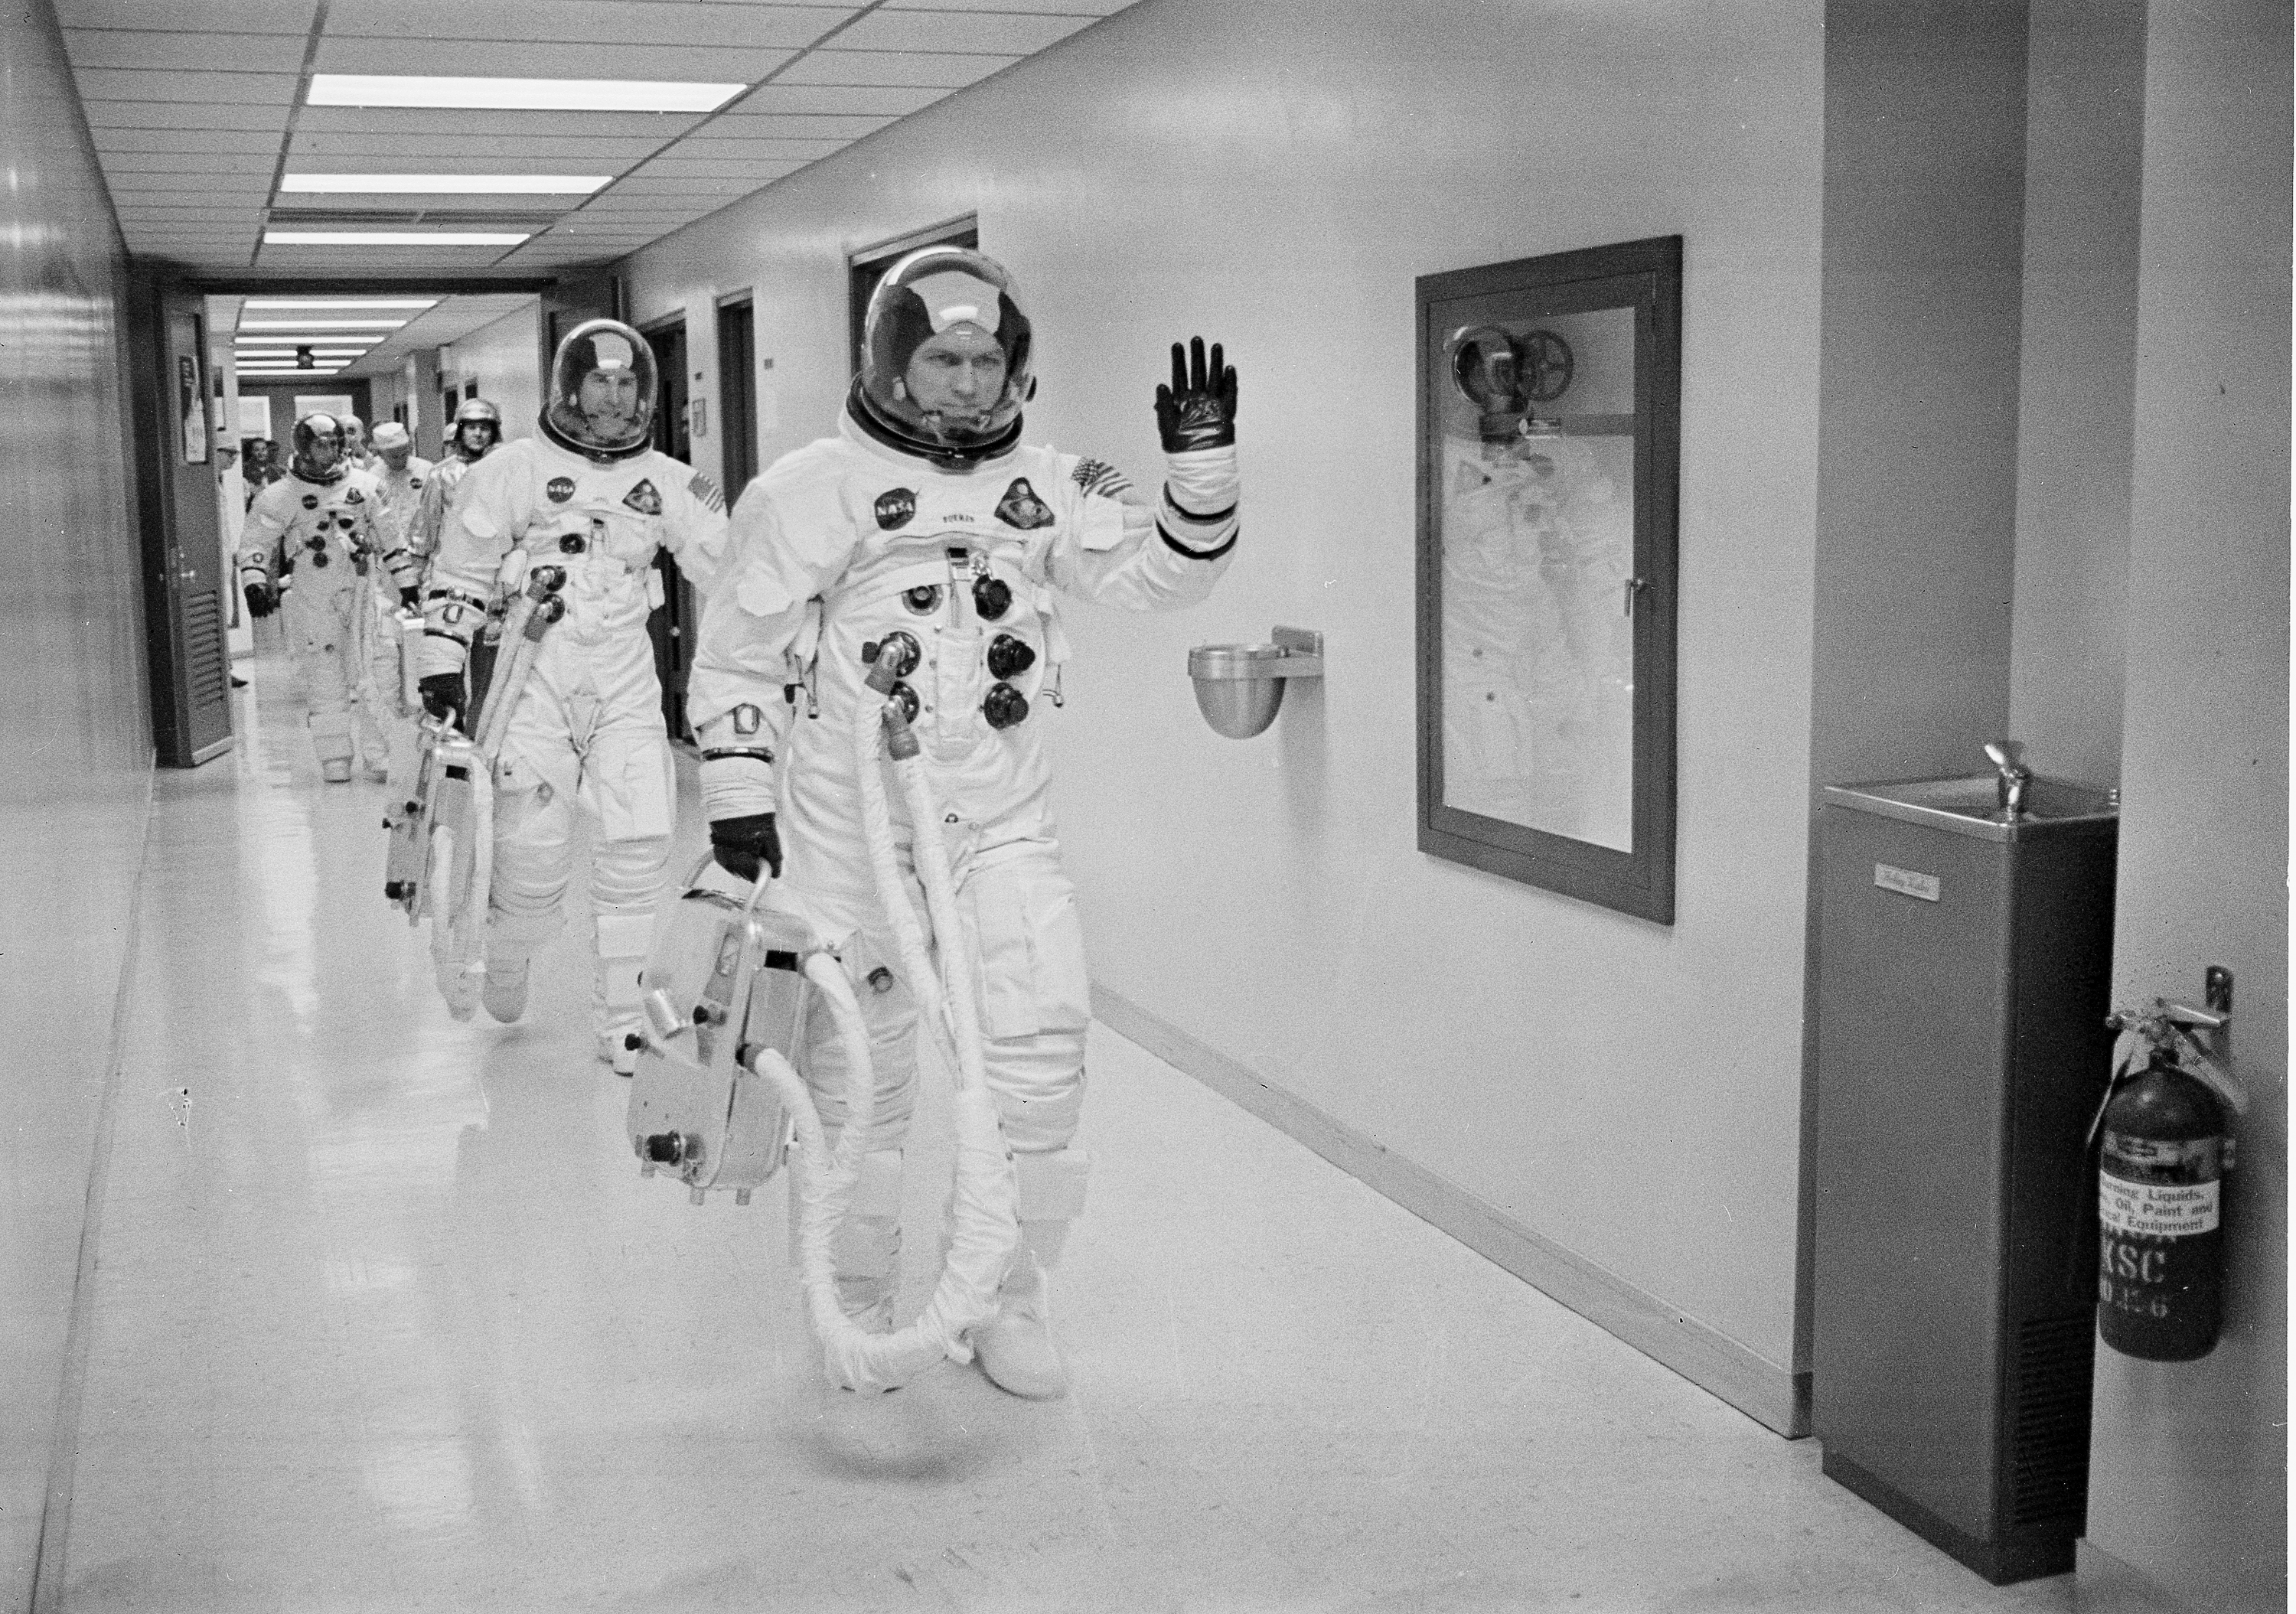 Trio of men in spacesuits walking down a hall.